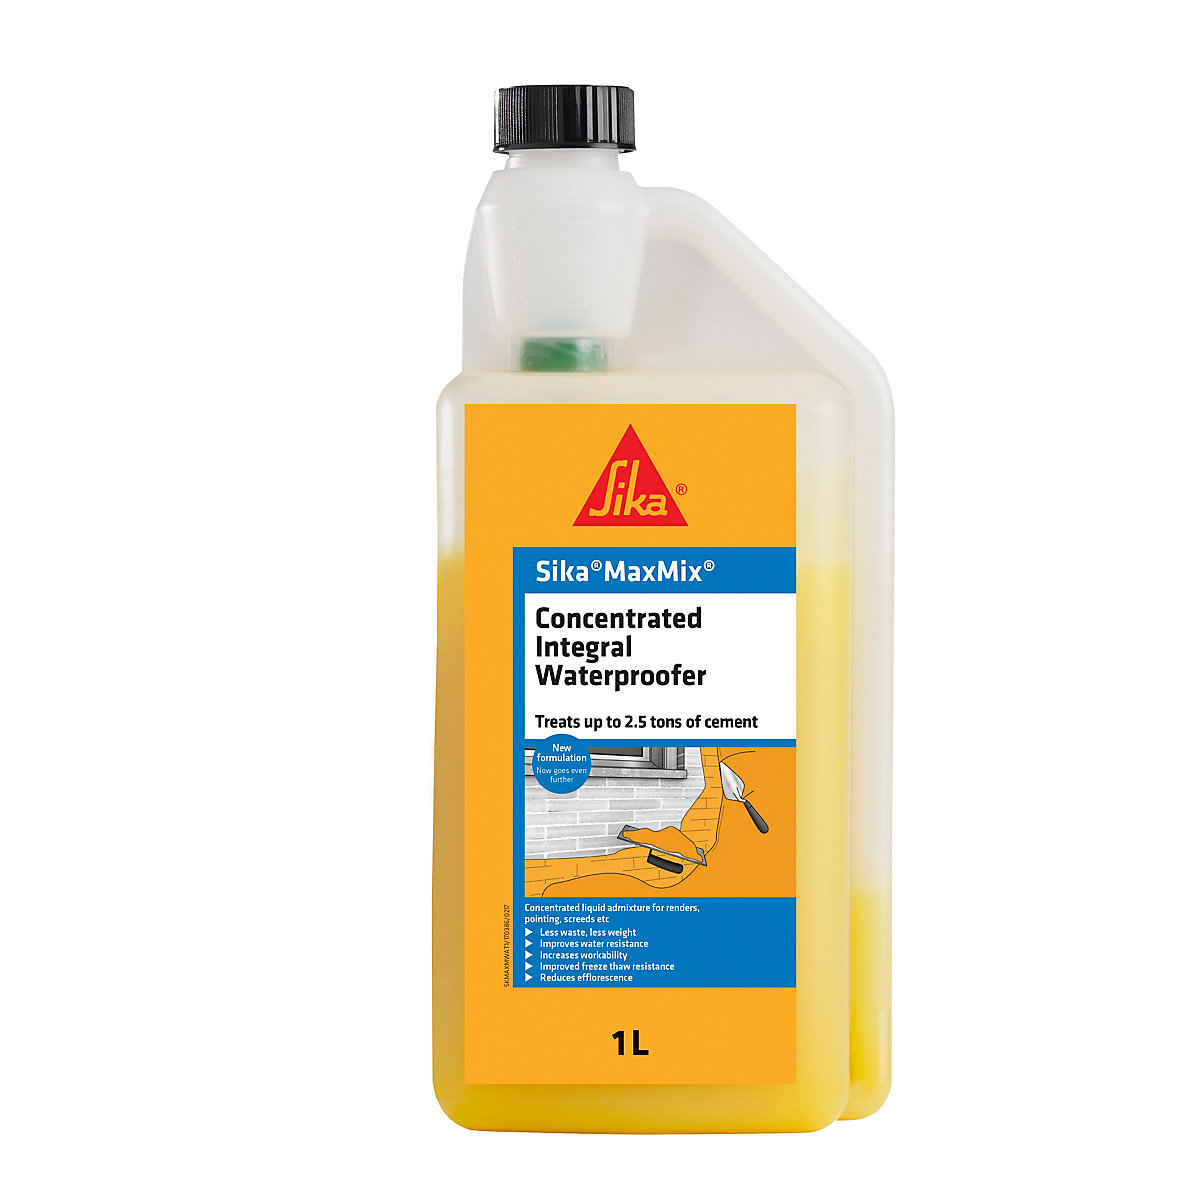 Sika Maxmix Concentrated Integral Waterproofer 1L - Box of 6